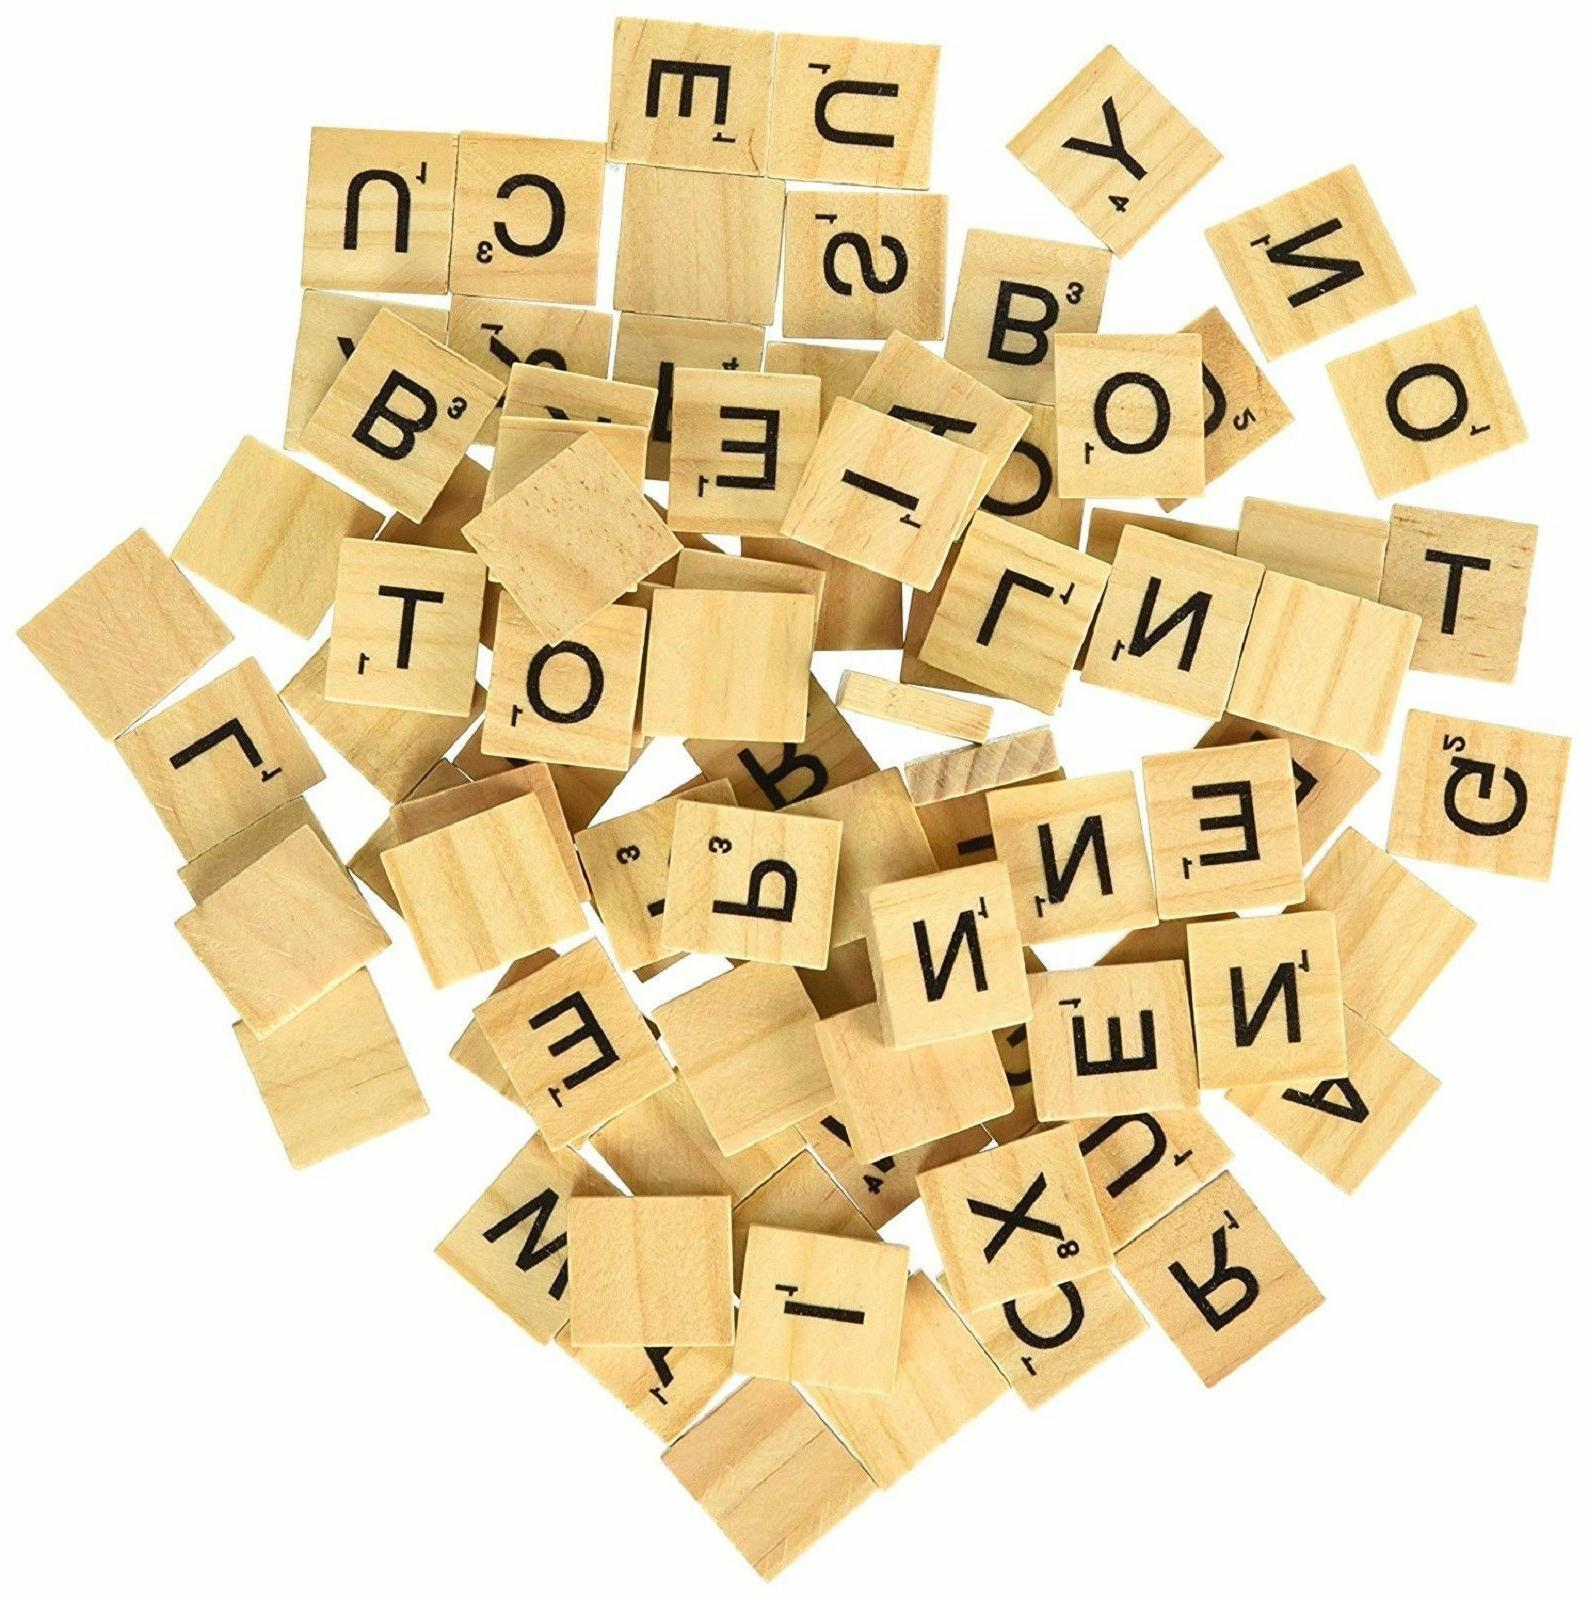 SCRABBLE WOOD 100-500 Pieces Sets Wooden Replacement